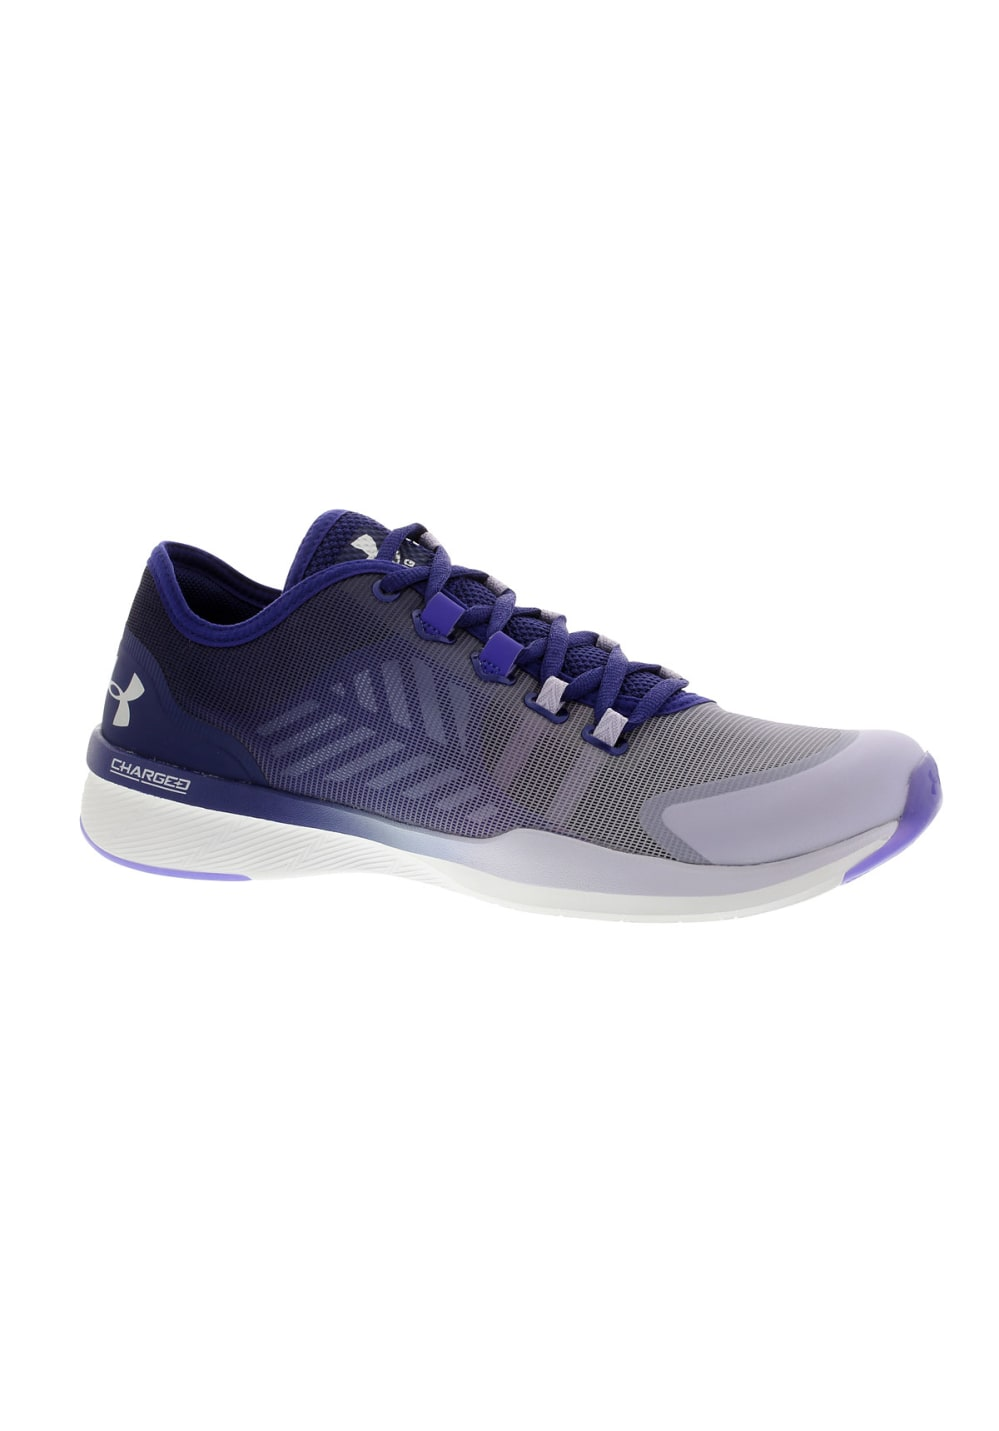 Pour Femme Chaussures Push Charged Armour Fitness Seg Tr Under qUO0wn